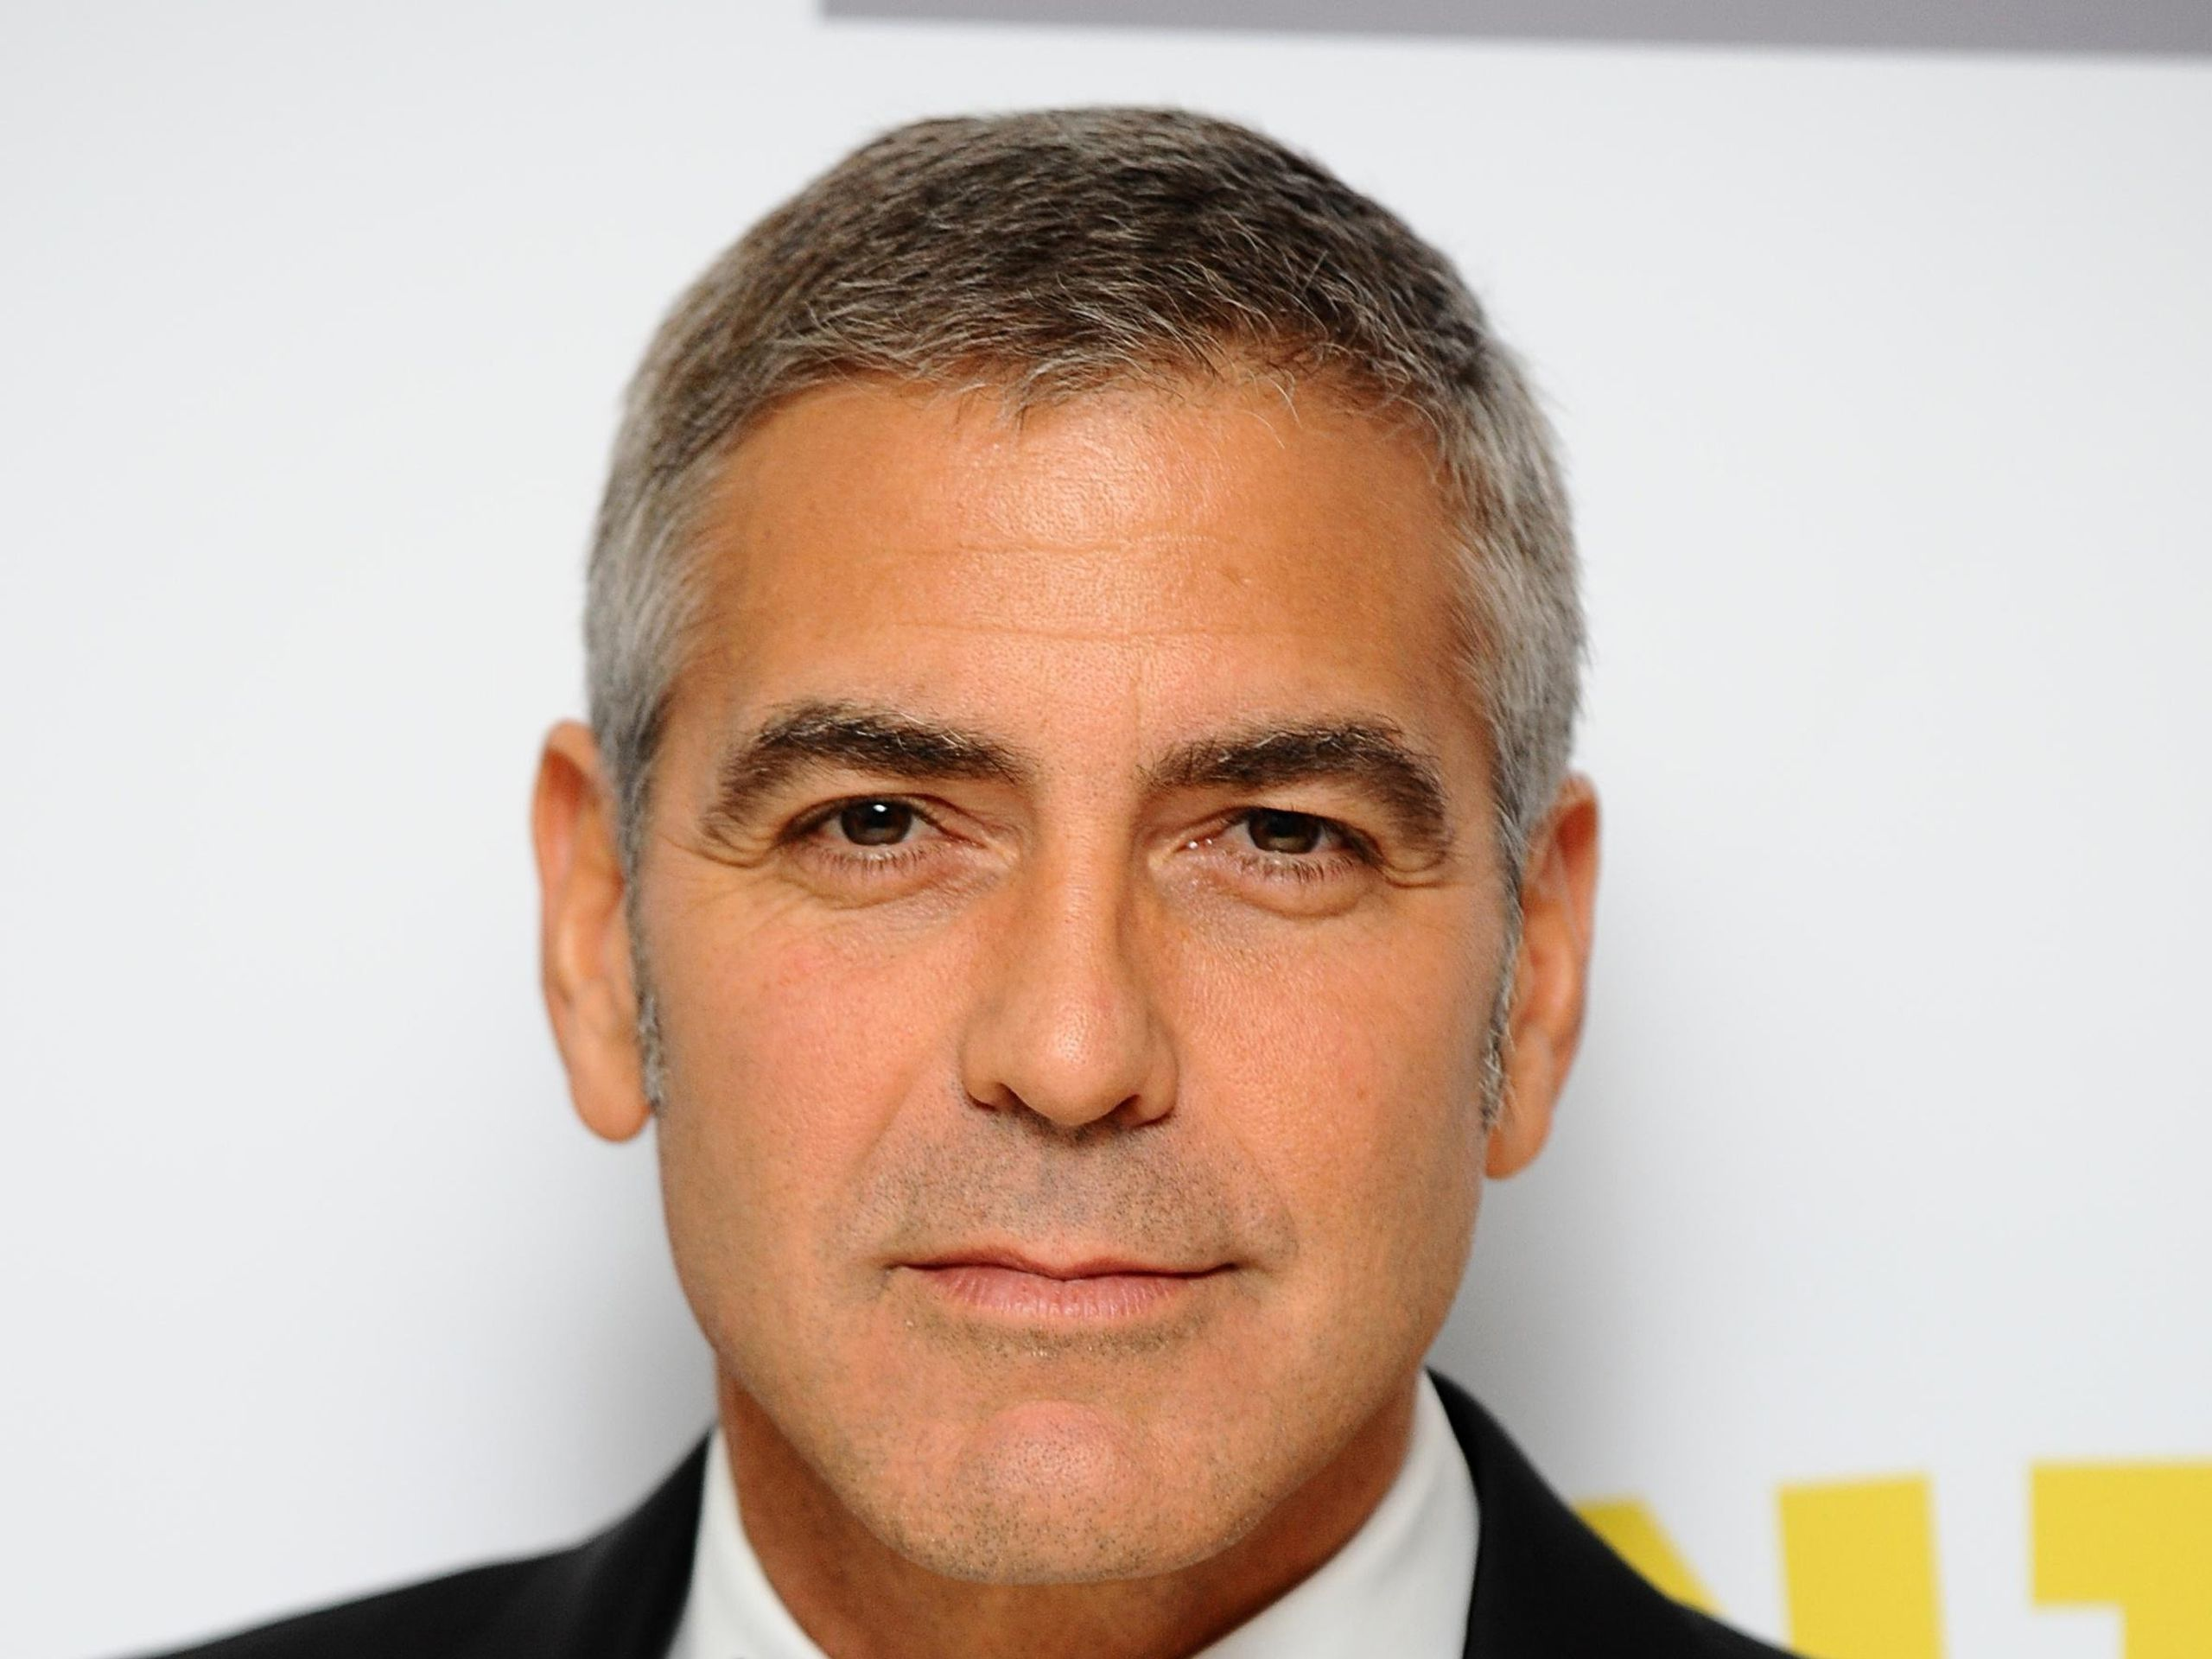 George Clooney Wallpapers Backgrounds